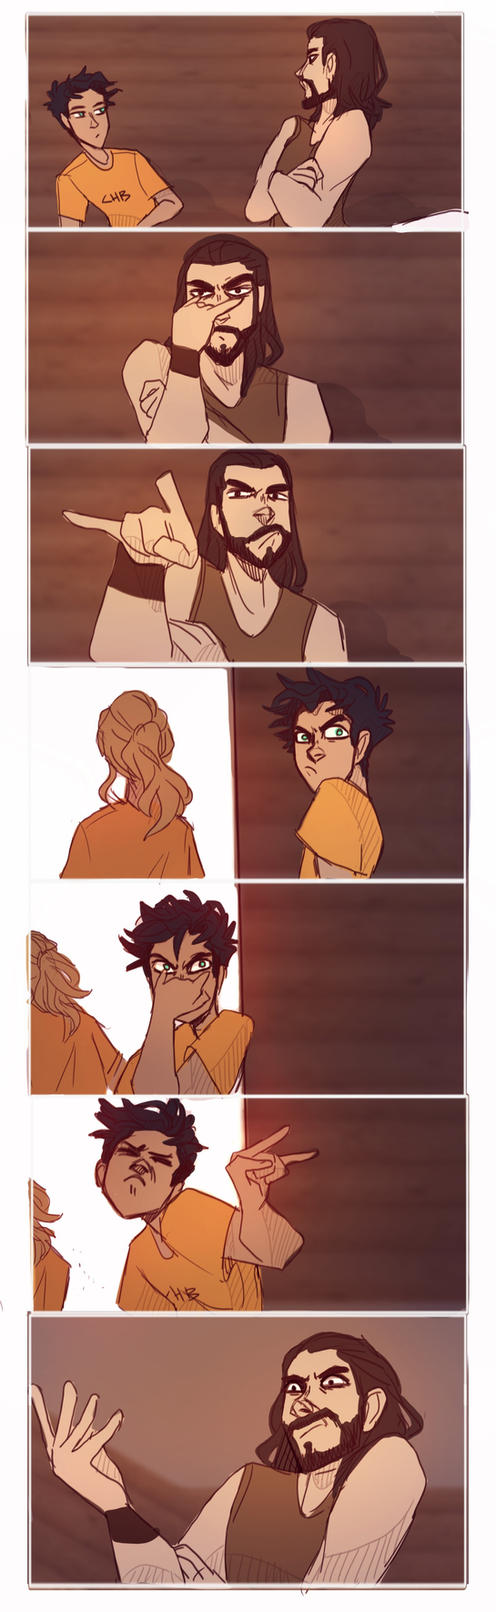 This happened at some point by Tamaytka